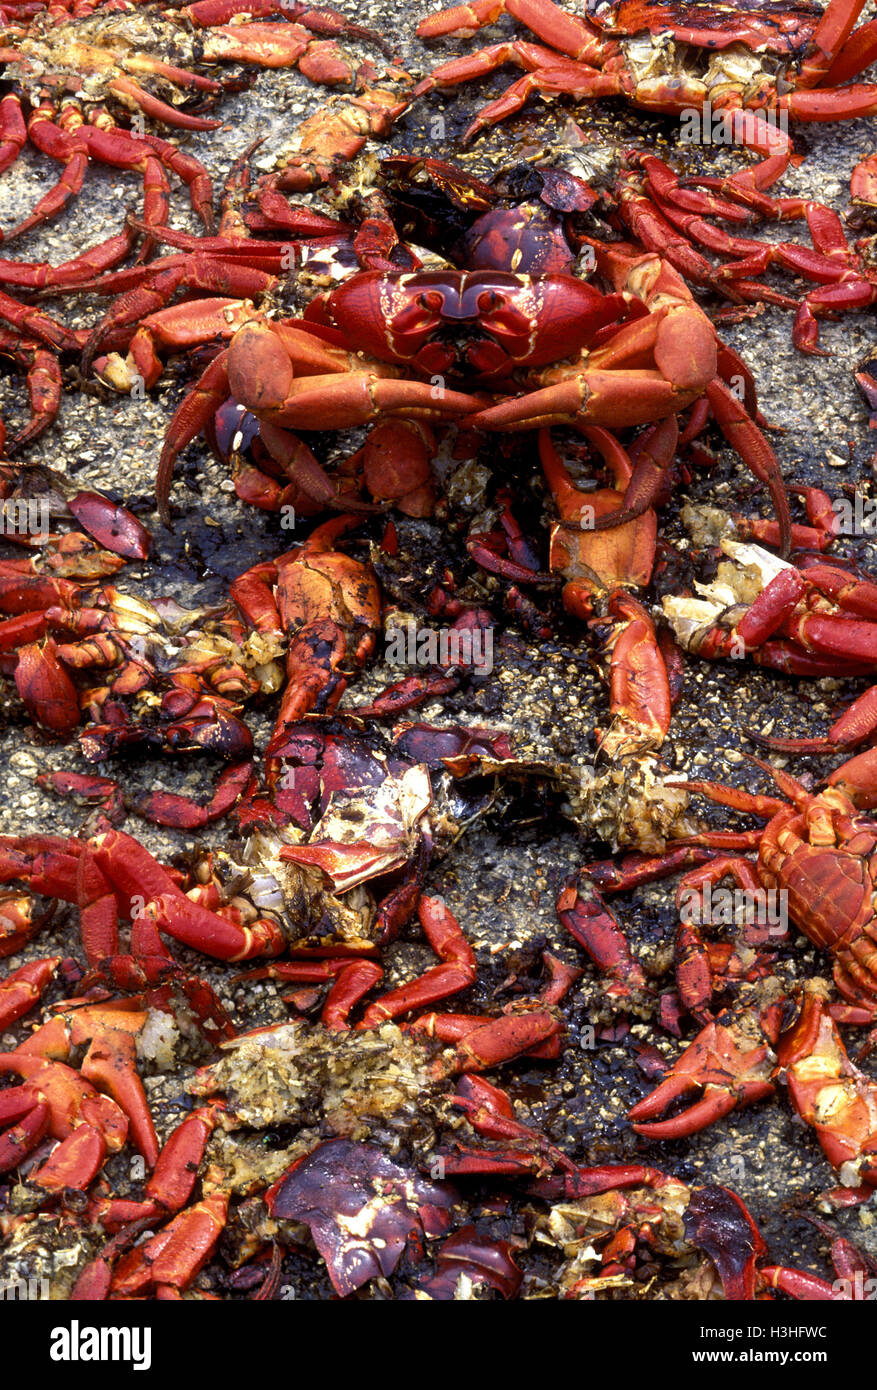 Cannibalism Stock Photos & Cannibalism Stock Images - Page 2 - Alamy